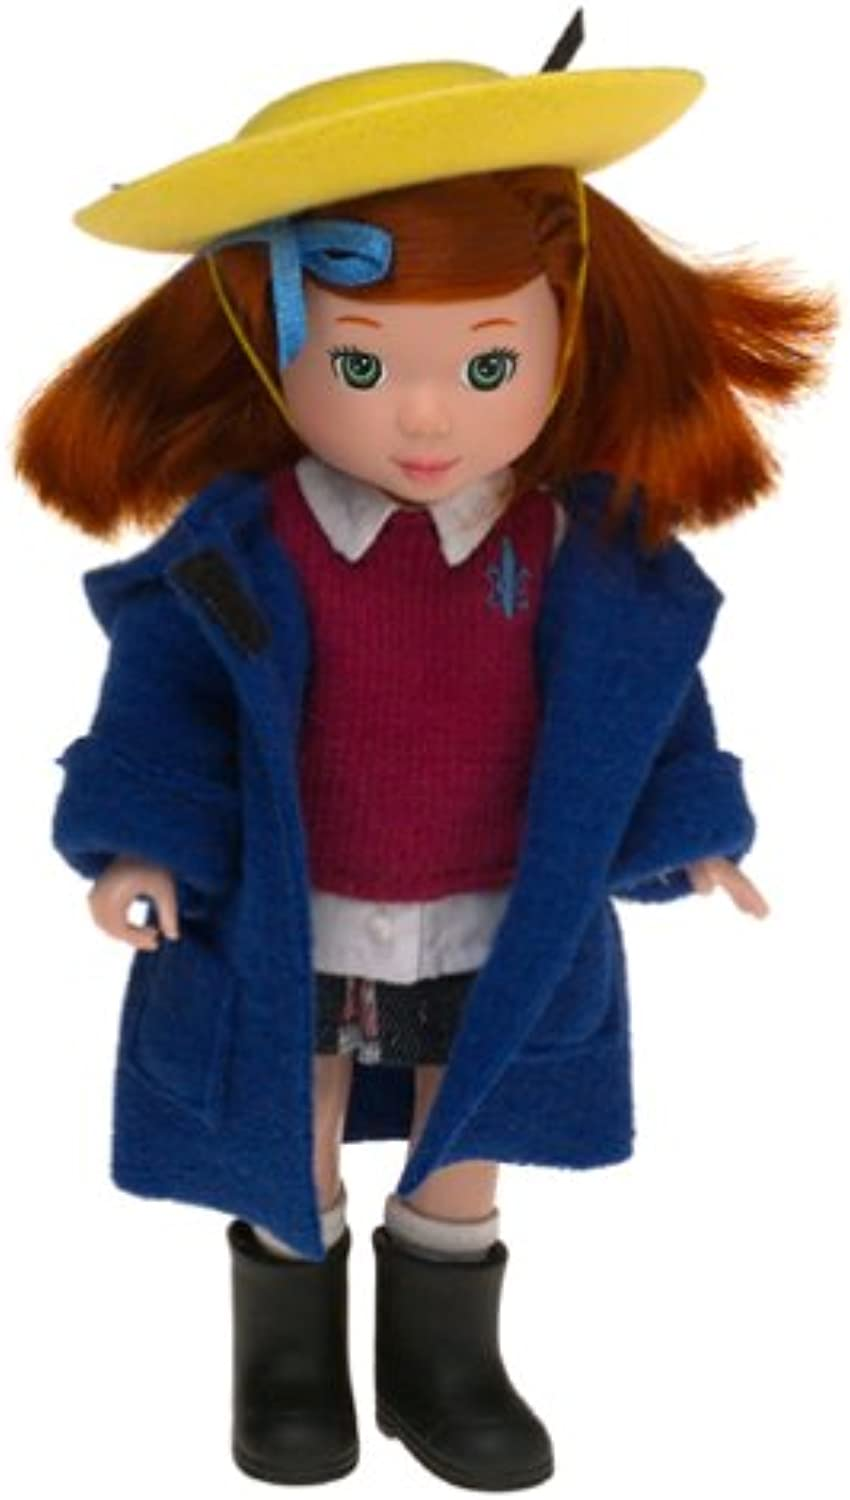 Learning Curve 2003 Madeline 8 Poseable Doll Bonus Outfit by Madeline & Friends